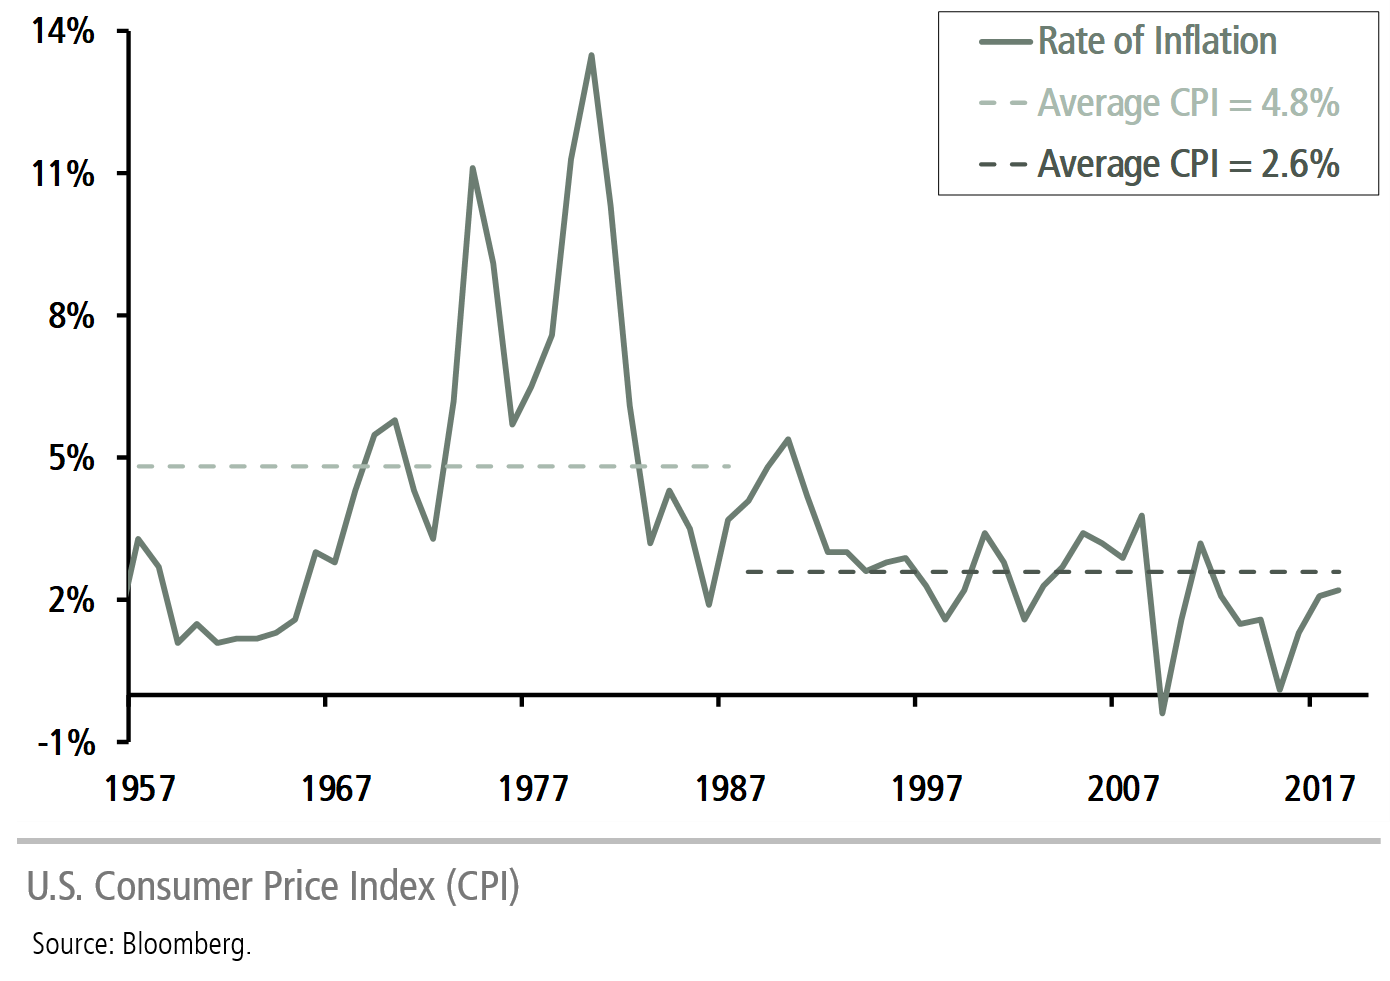 U.S. Consumer Price Index